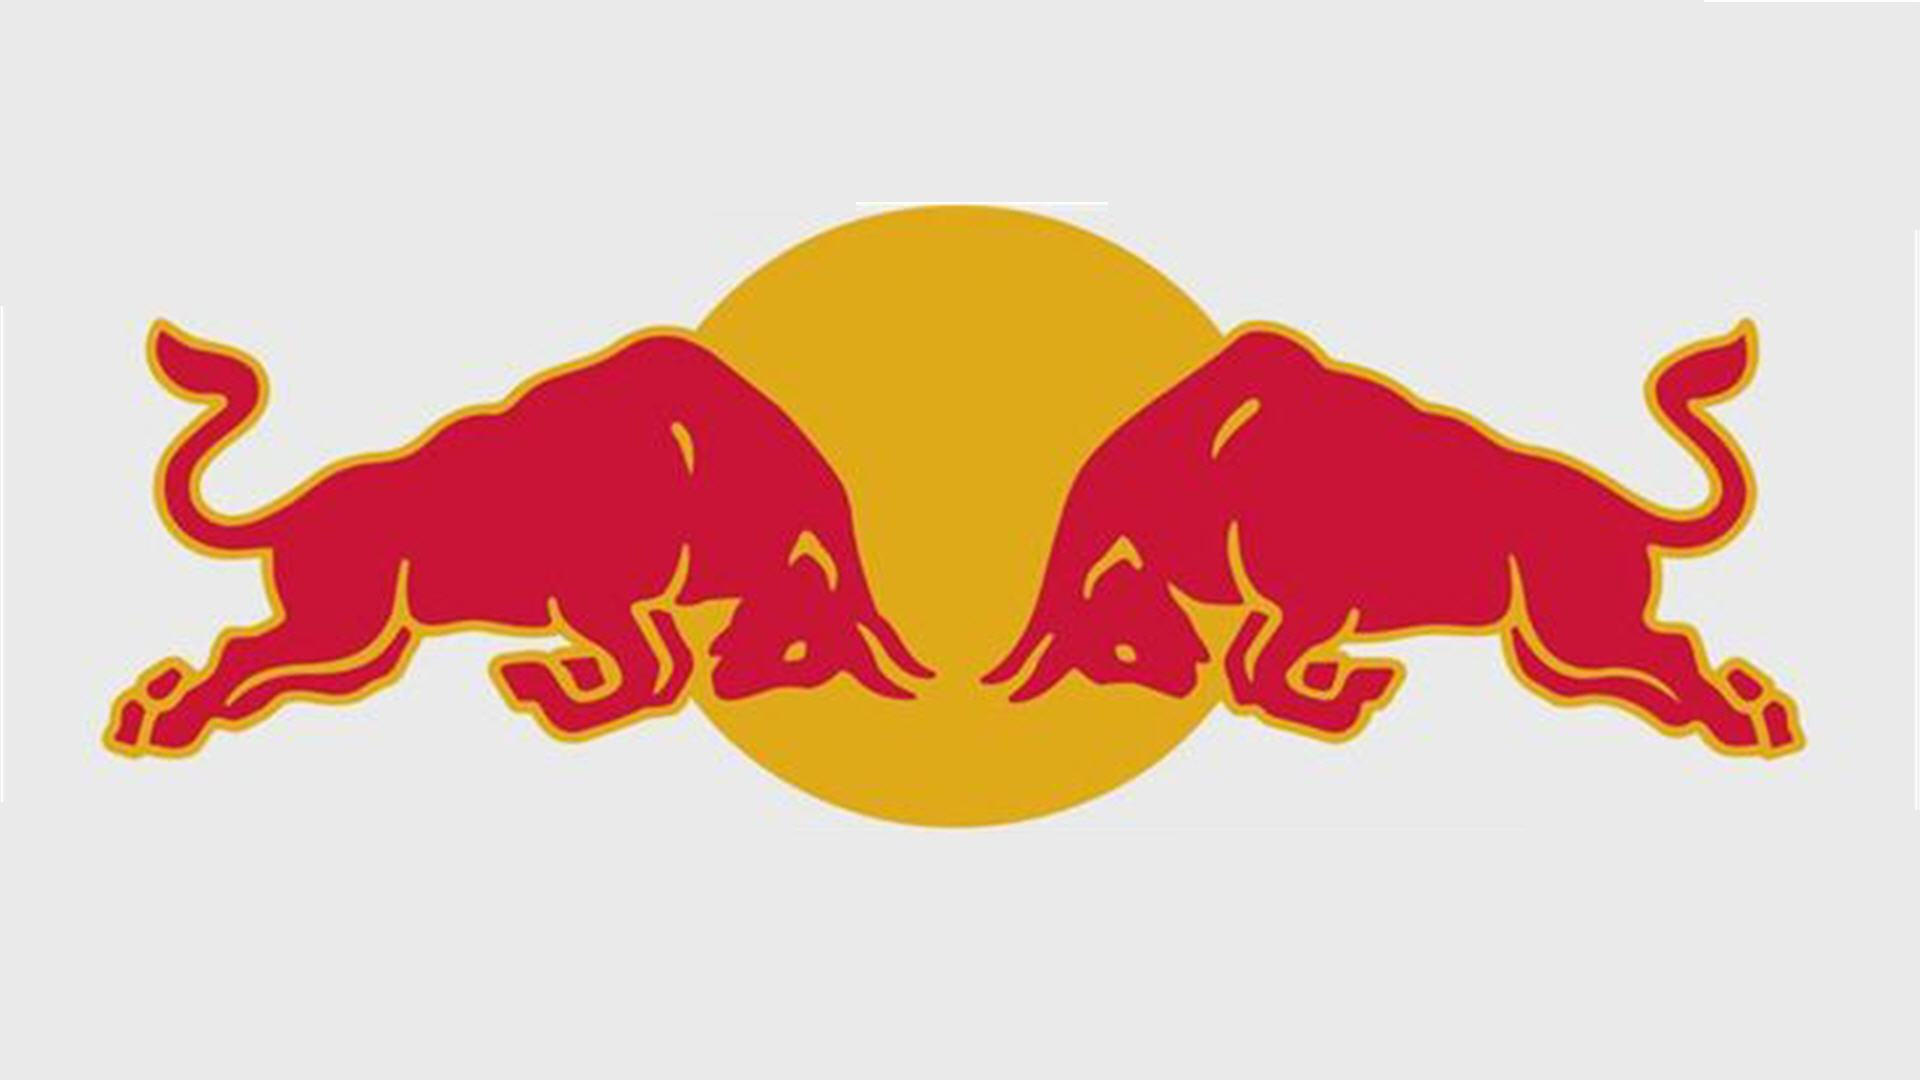 Amazing Logo Wallpaper Hd Red Bull Image Gallery Free Download Logo - Red Bull, Transparent background PNG HD thumbnail